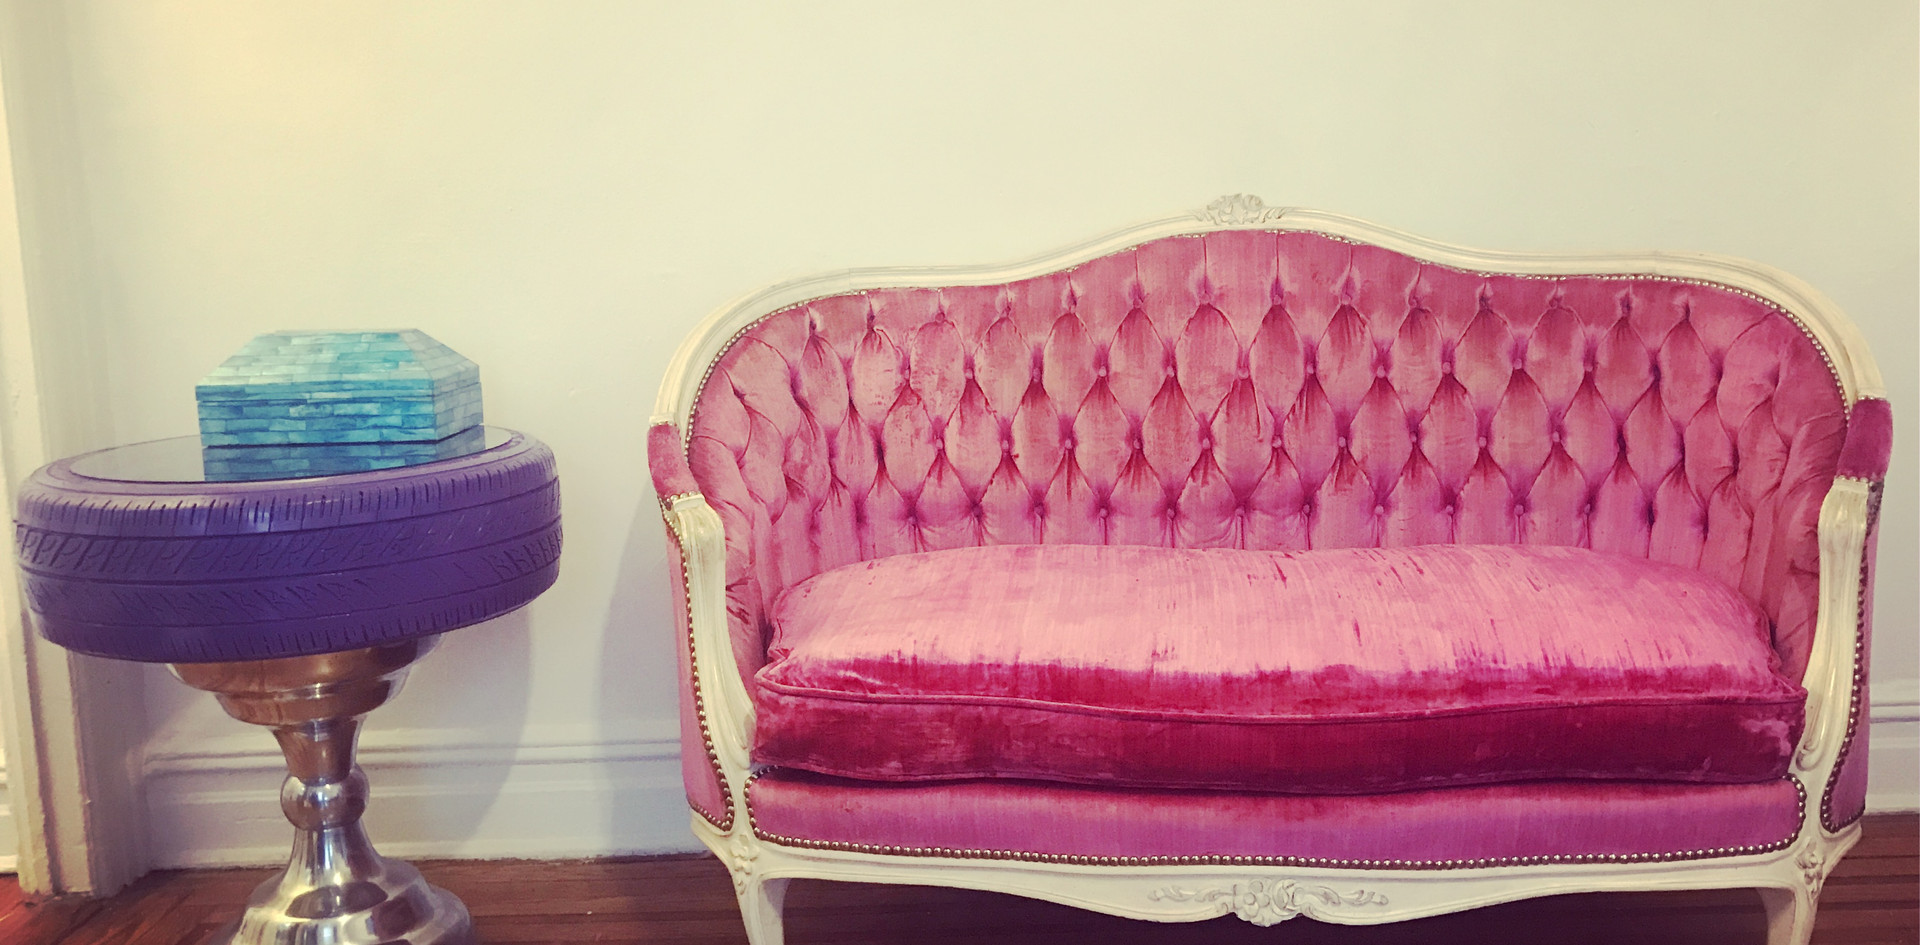 Vintage Couch and Upcycled Tire